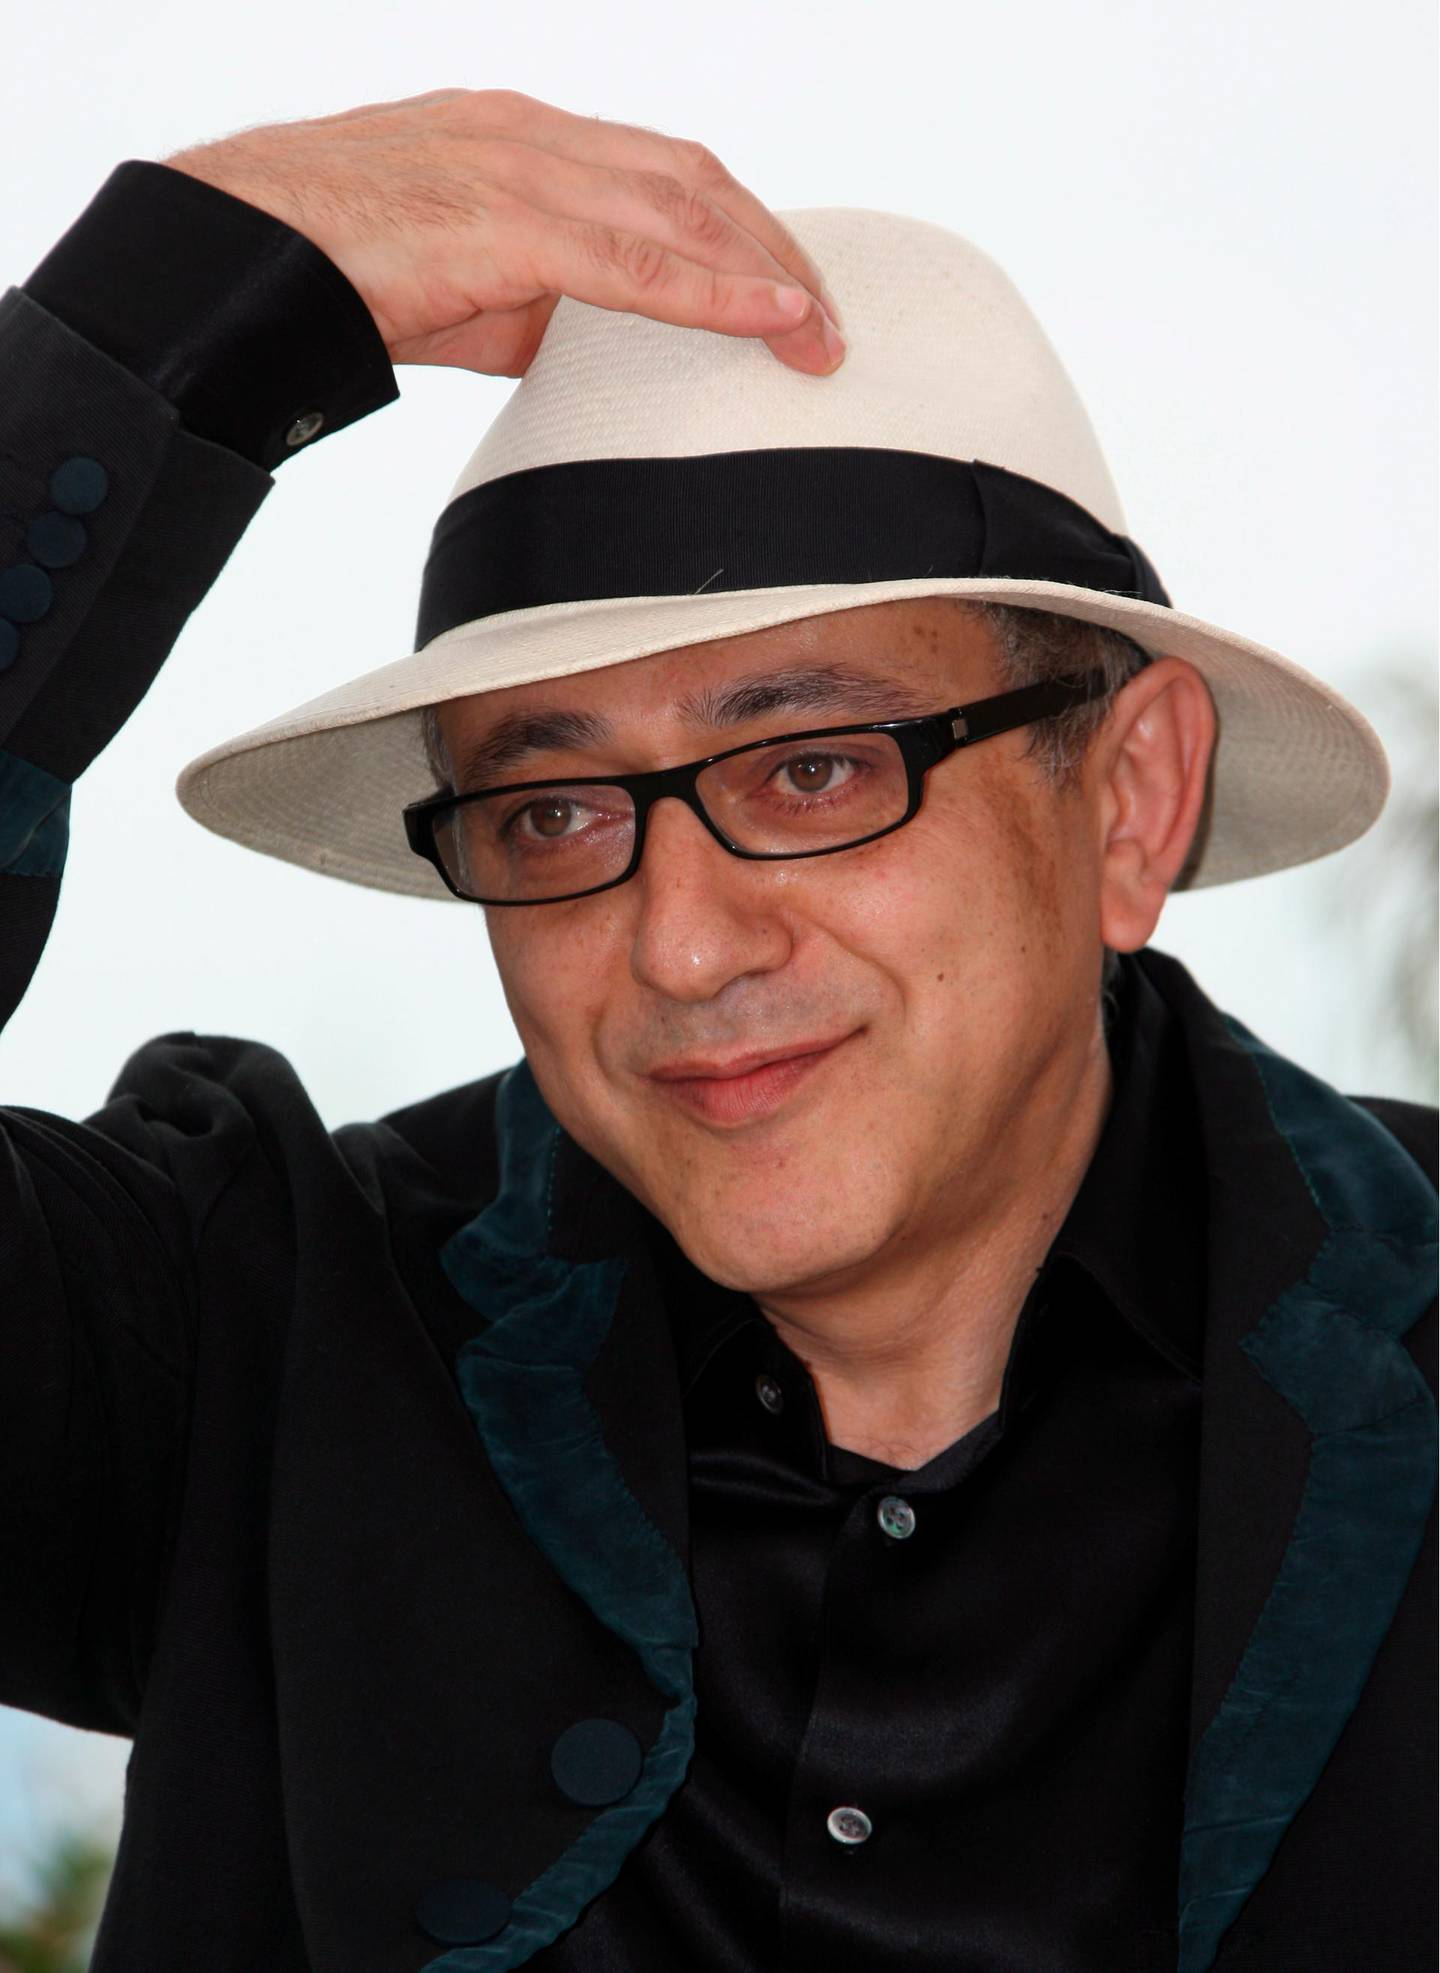 epa07513446 (FILE) - Palestinian director Elia Suleiman,  attends the photocall for the film 'The Time that Remains'  in the 62nd edition of the Cannes film festival in Cannes, France, 22 May 2009. (reissued 18 April 2019) His movie 'It Must be Heaven' will be presented in the official selection at the 72nd annual Cannes Film Festival, it was announced on 18 April 2019.  EPA/GUILLAUME HORCAJUELO *** Local Caption *** 54258848